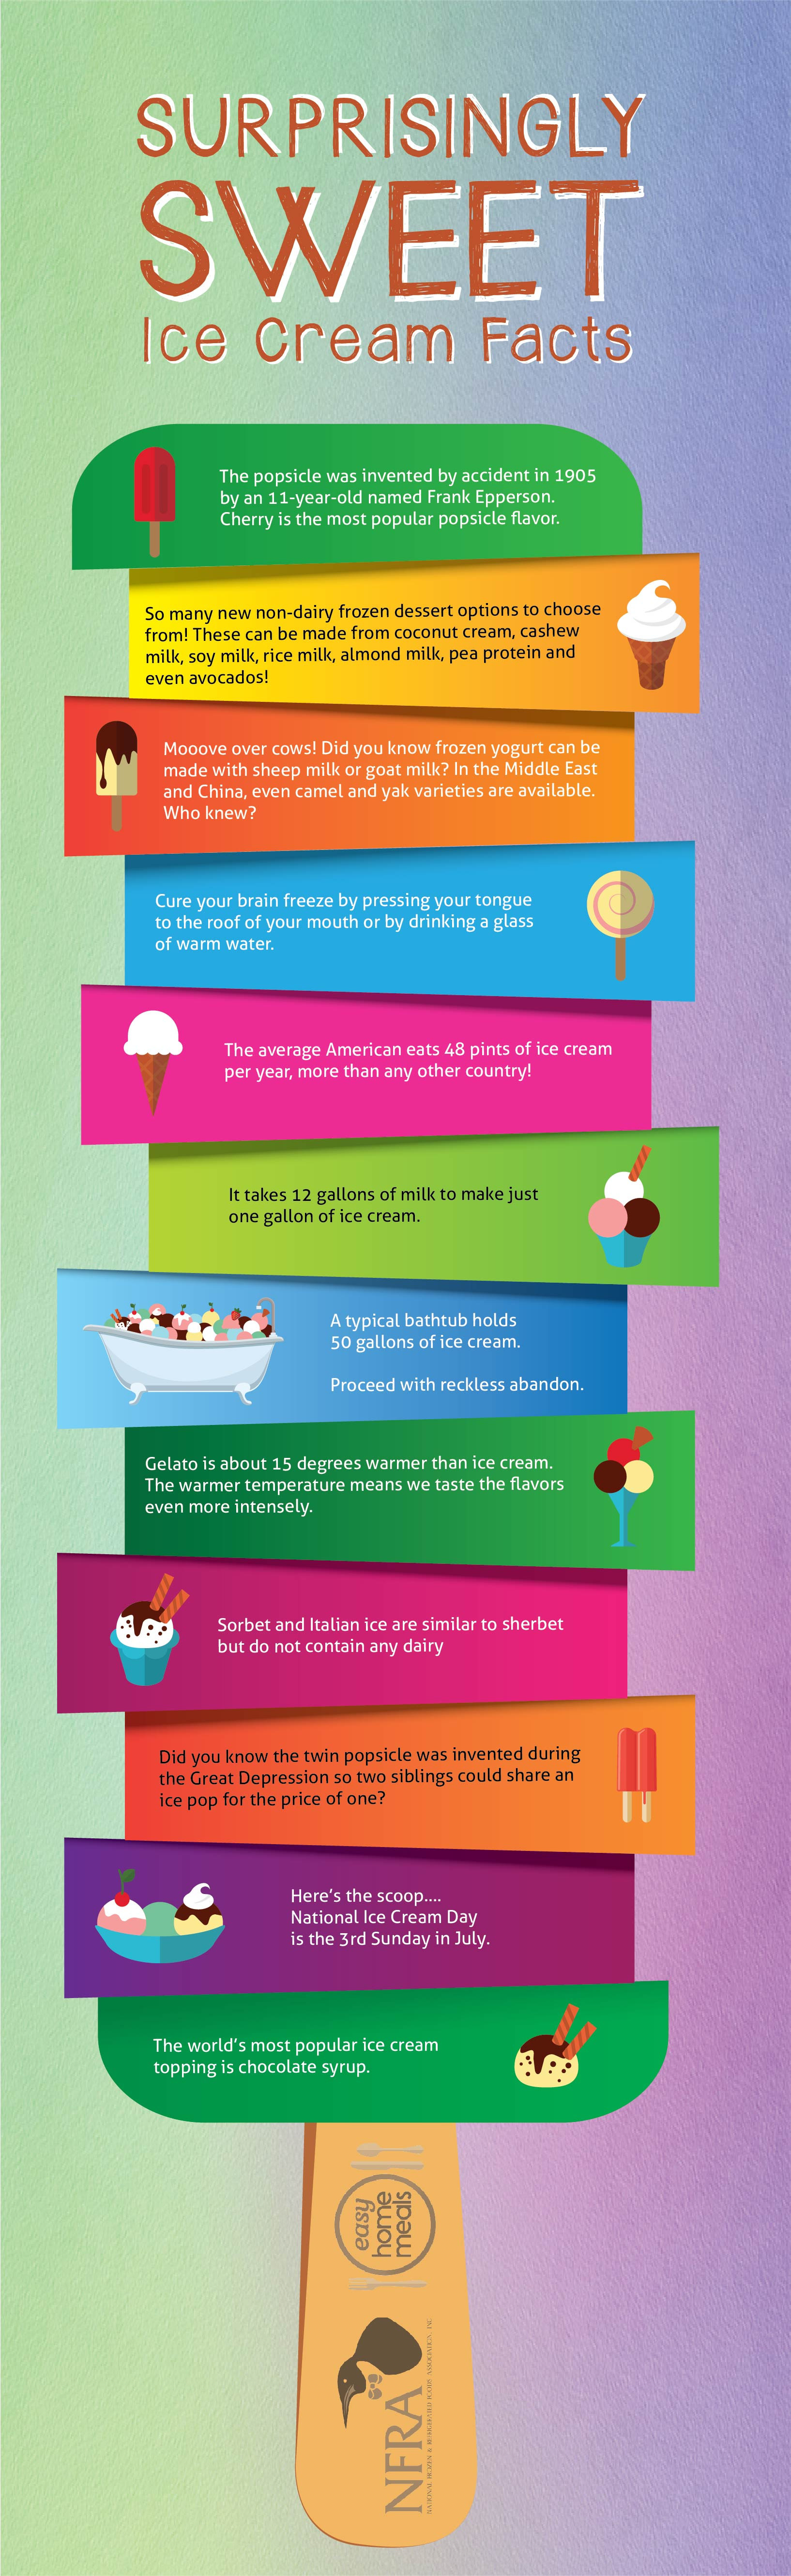 Ice Cream Facts Infographic